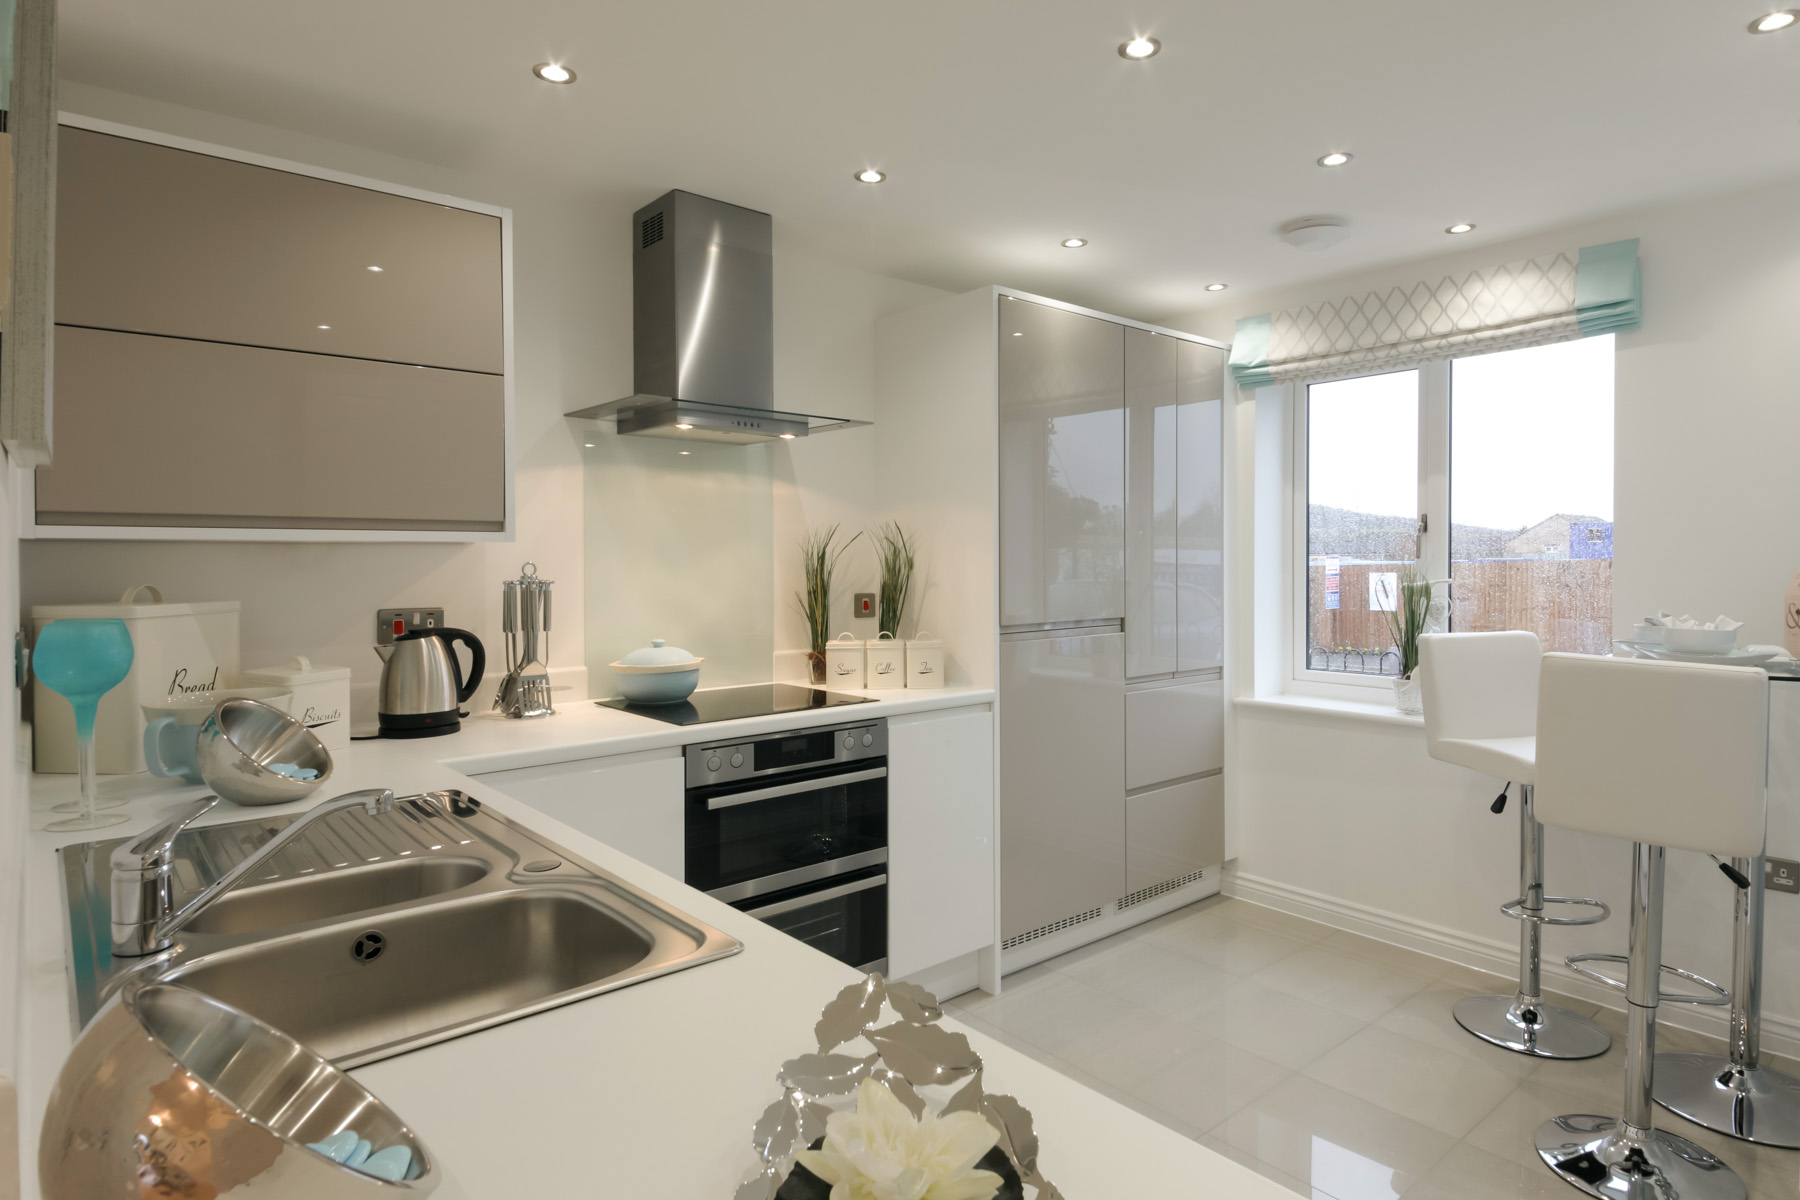 TW Exeter - Sherford - The Danbruy example kitchen